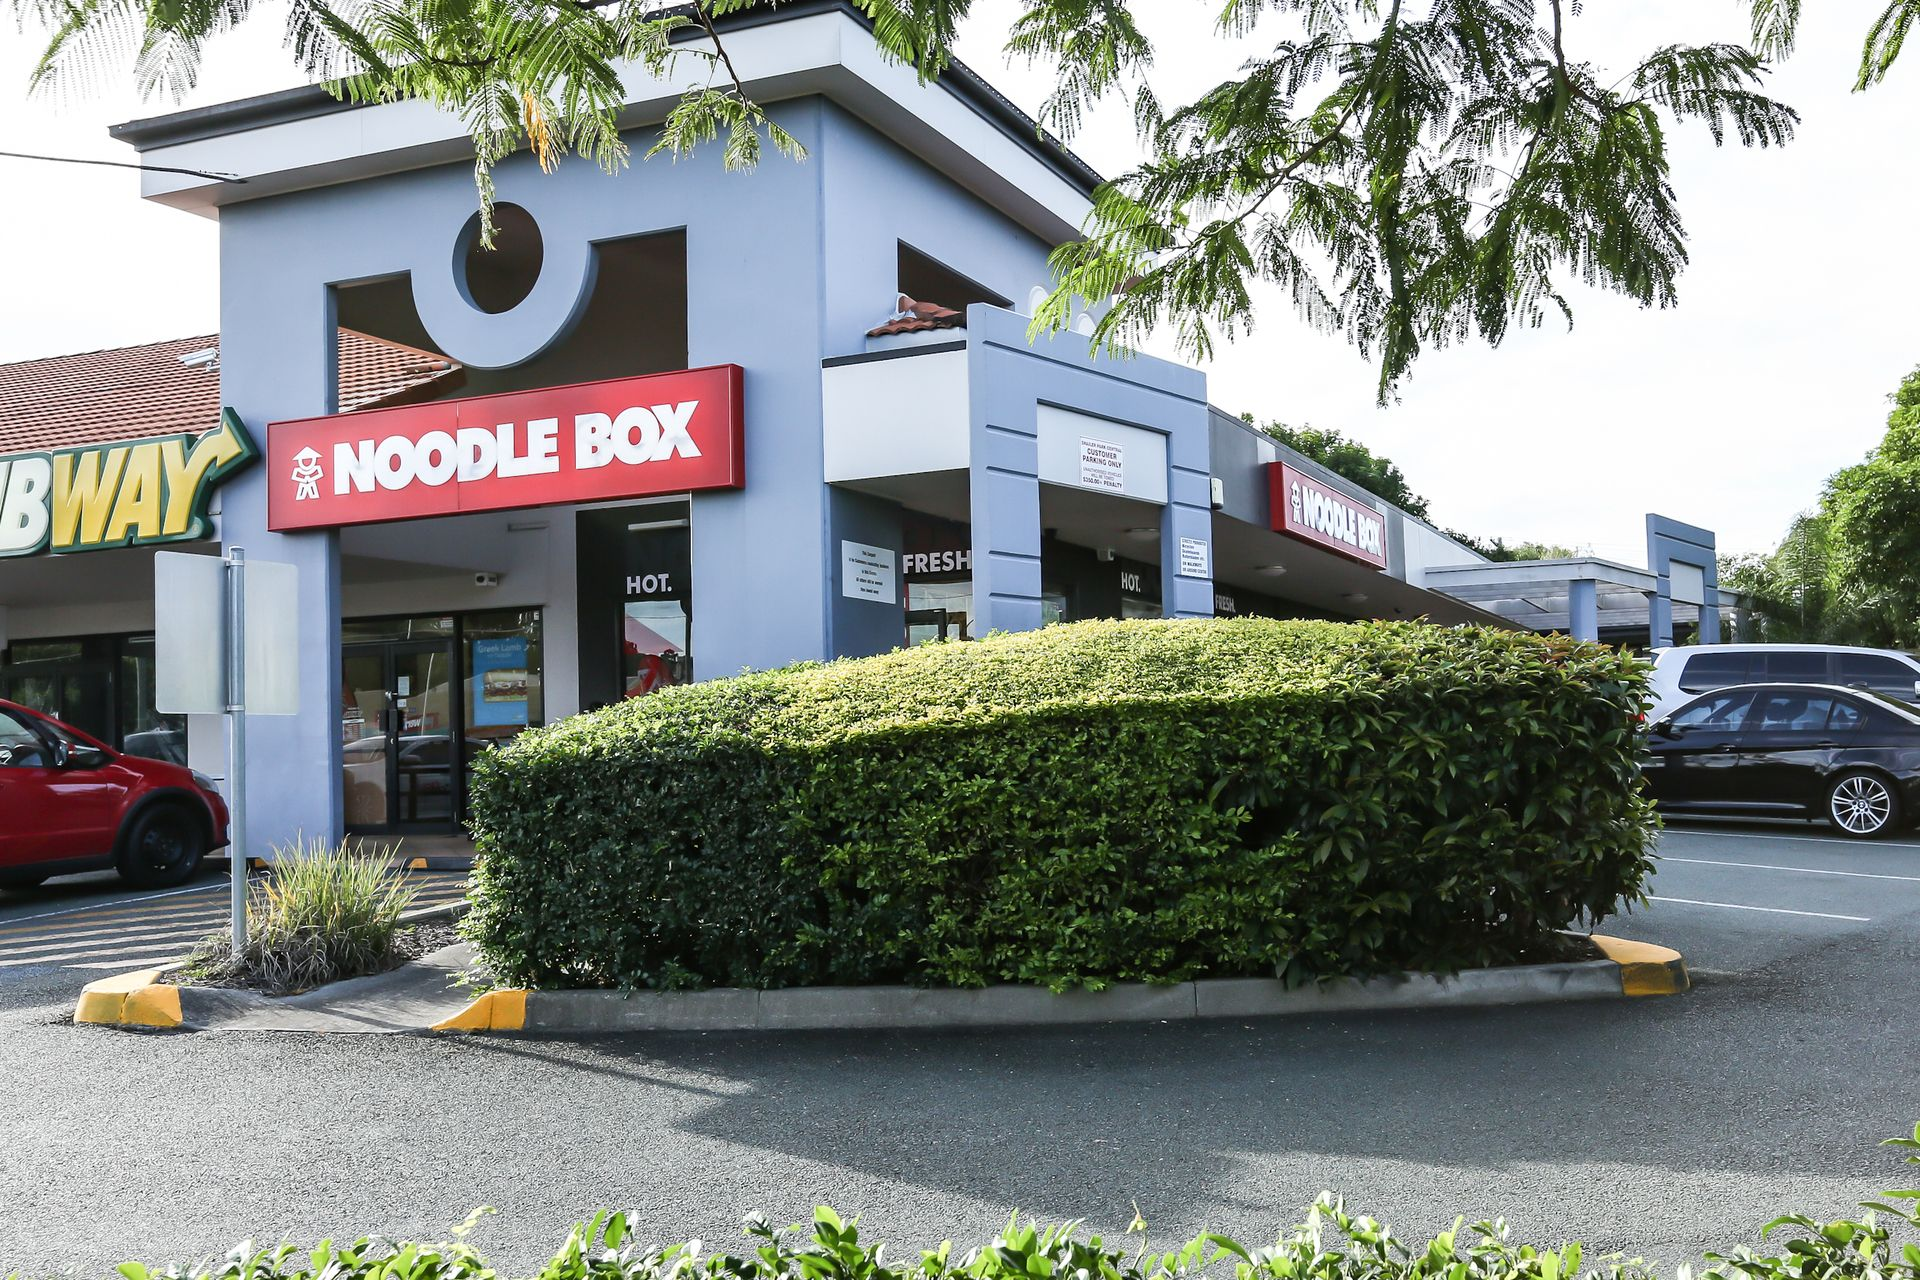 6.67% NET / NEW 5 YEAR LEASE! INVESTMENT - FAST FOOD RETAIL